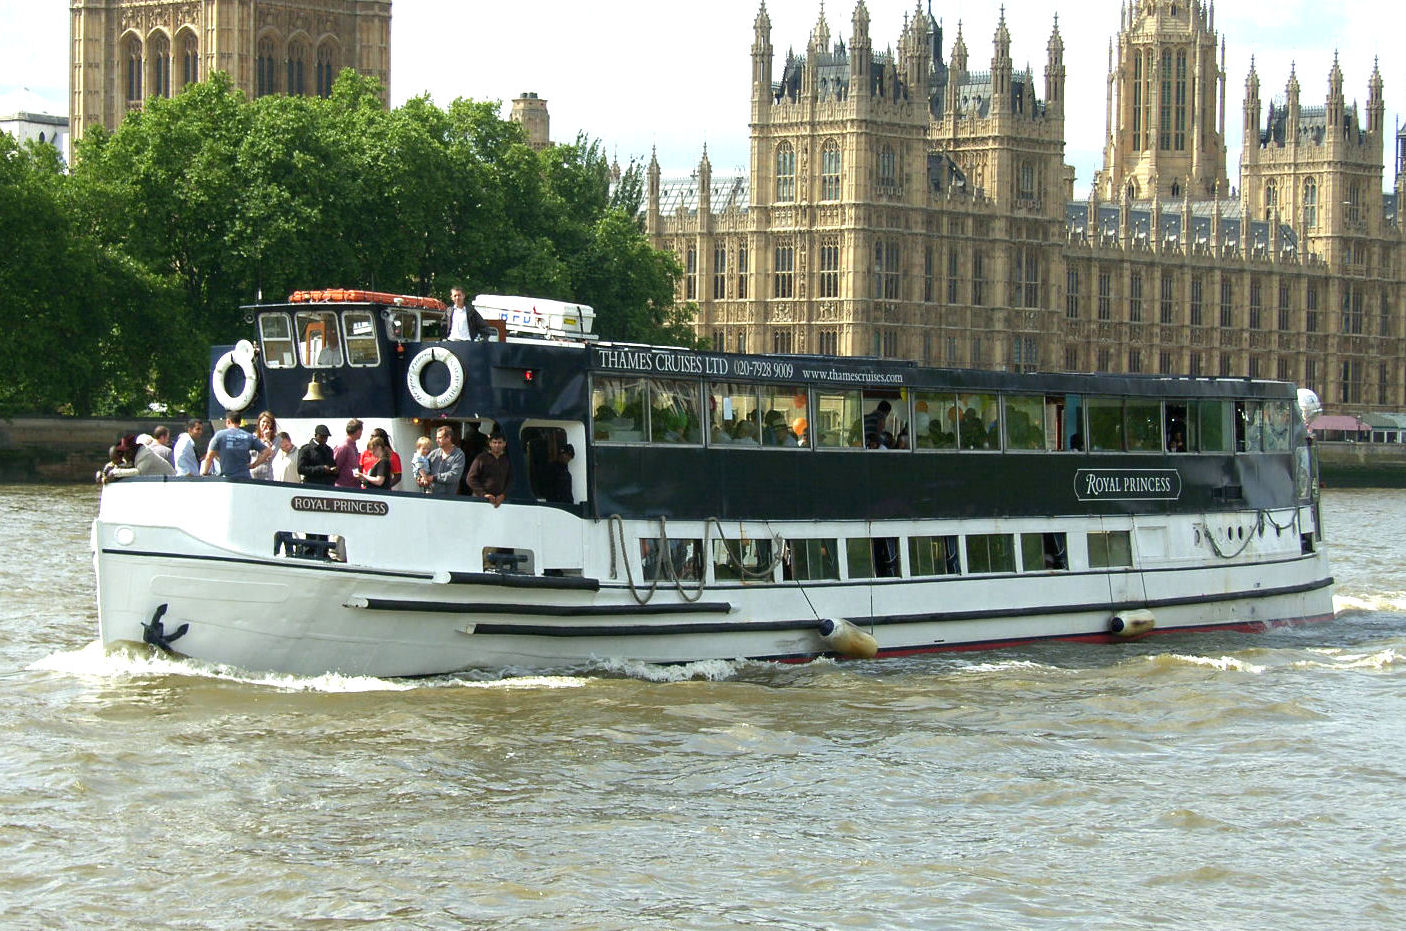 Oxford River Cruises The Thames Valley, Thames River Cruises   Boat Hire London   Thames Cruises